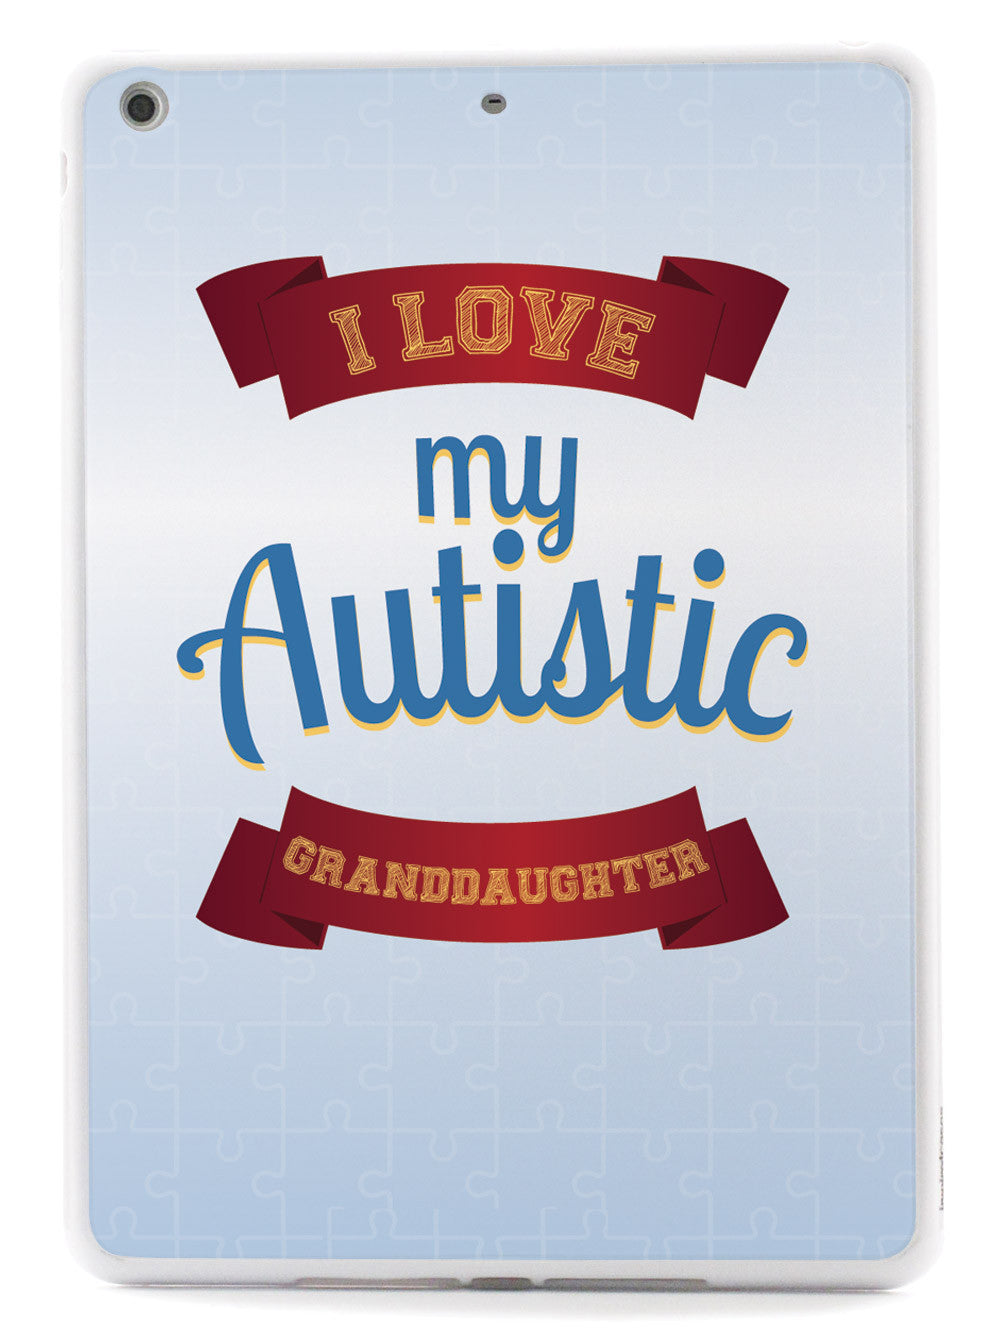 I Love My Autistic Granddaughter - Autism Awareness Case